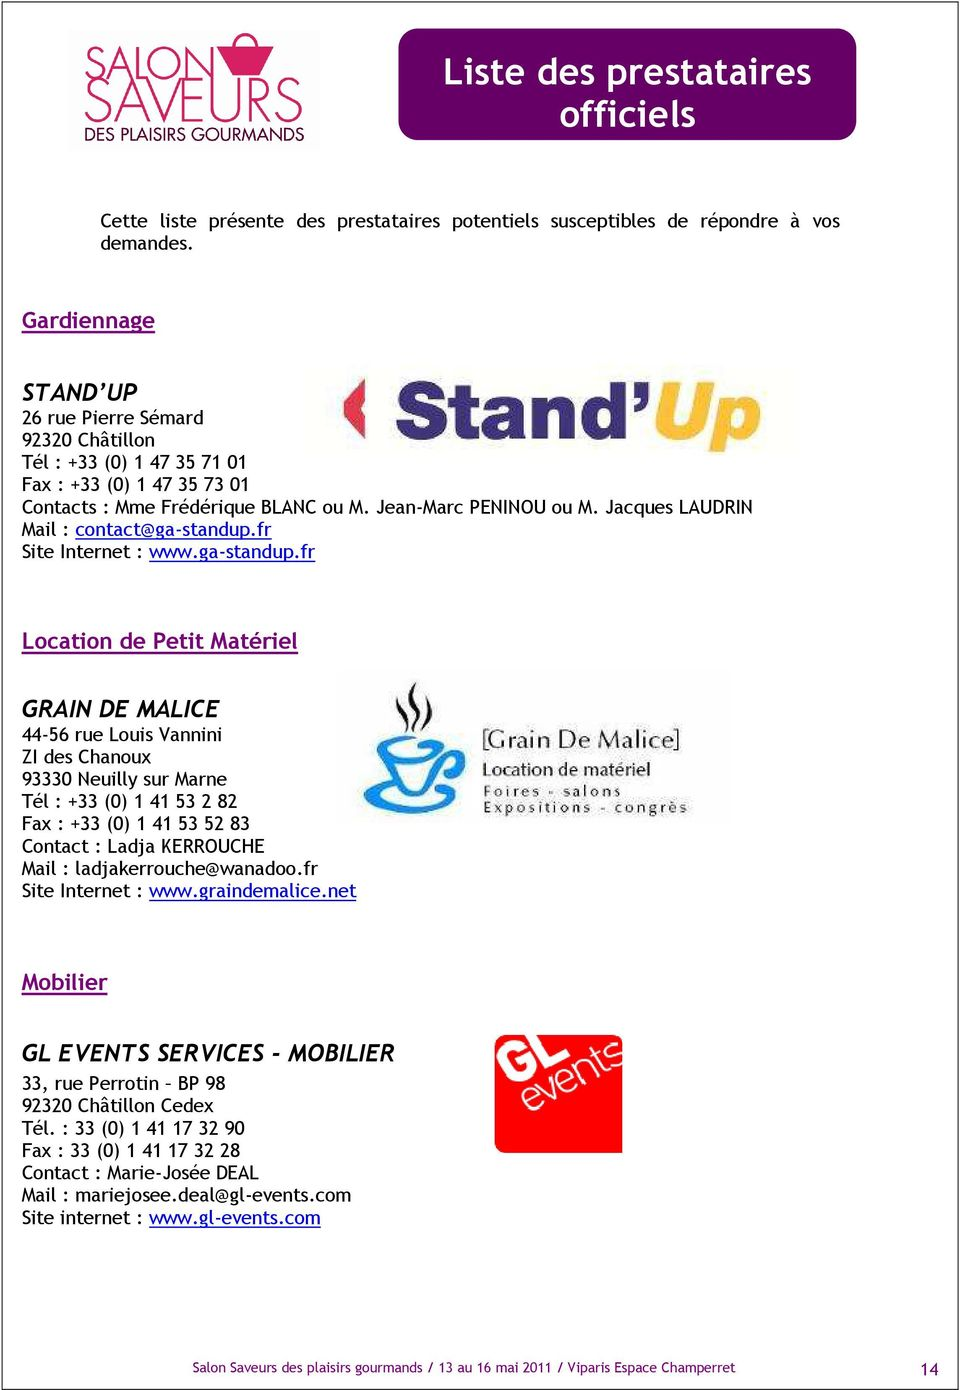 Jacques LAUDRIN Mail : contact@ga-standup.